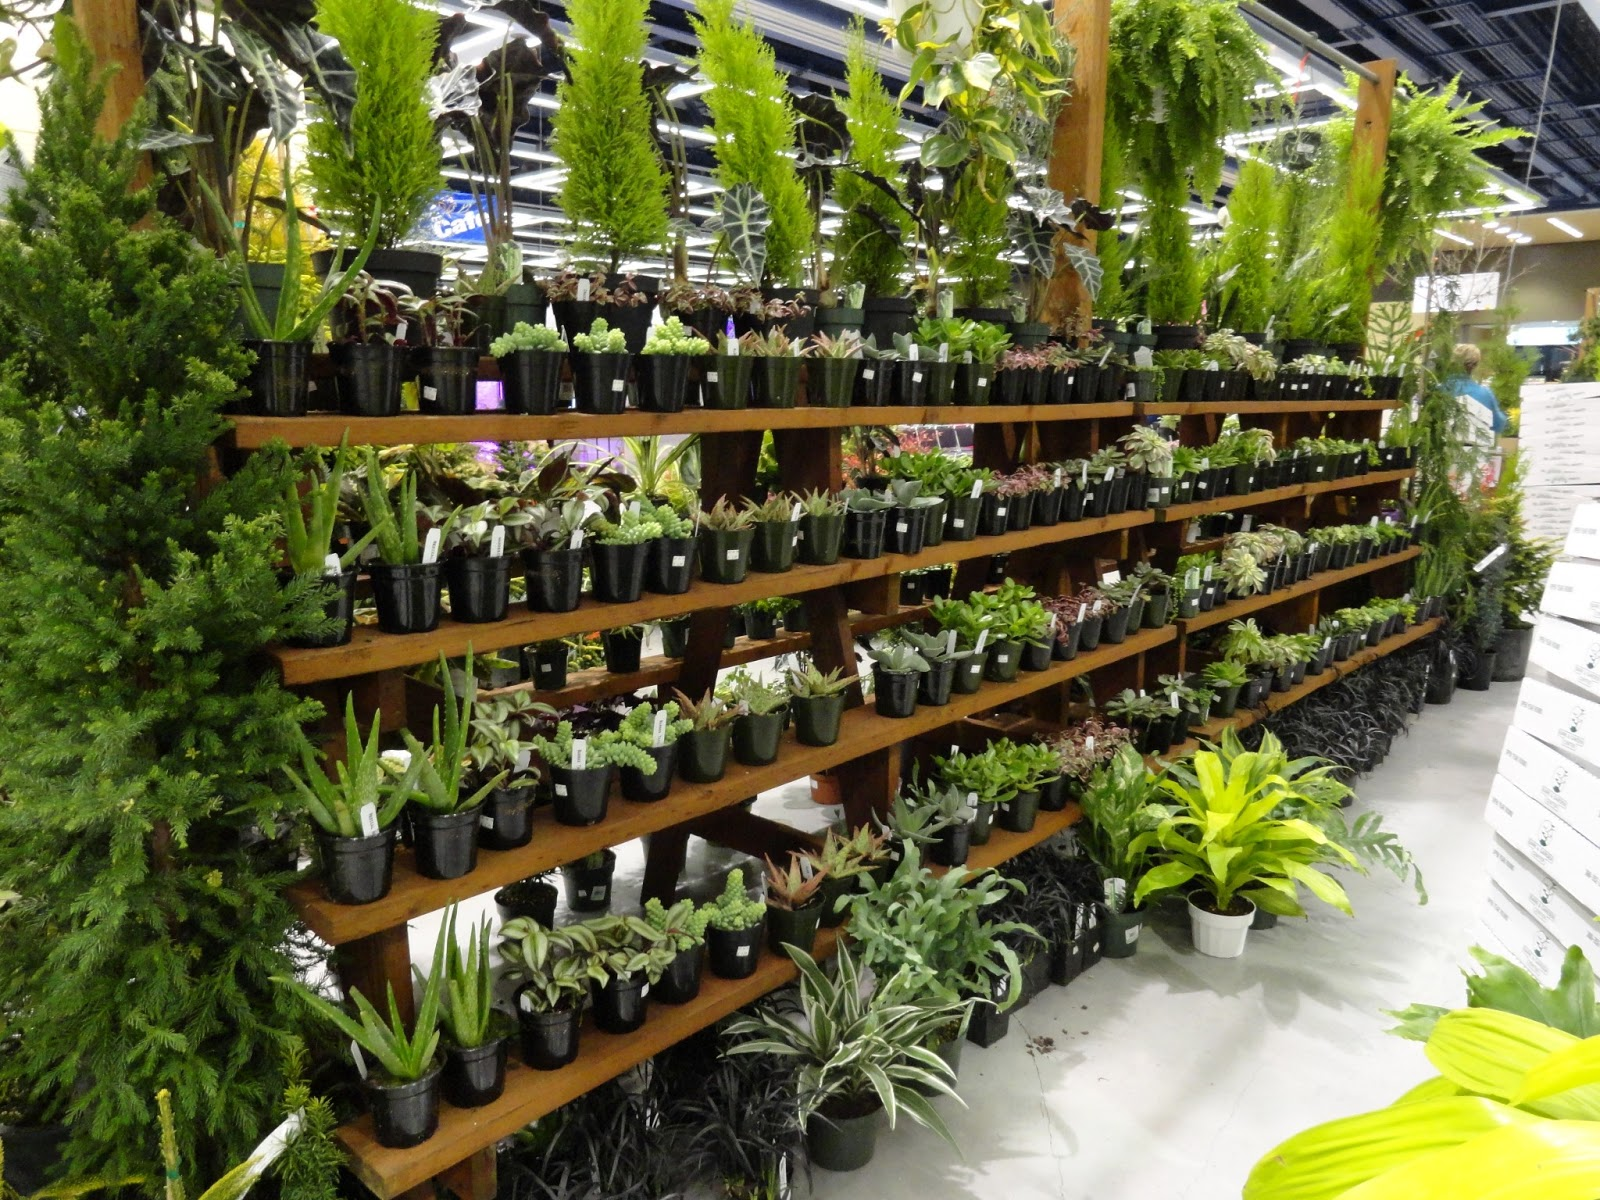 Nice And I Like Their Display Fixture, So Easy To See All The Plants!